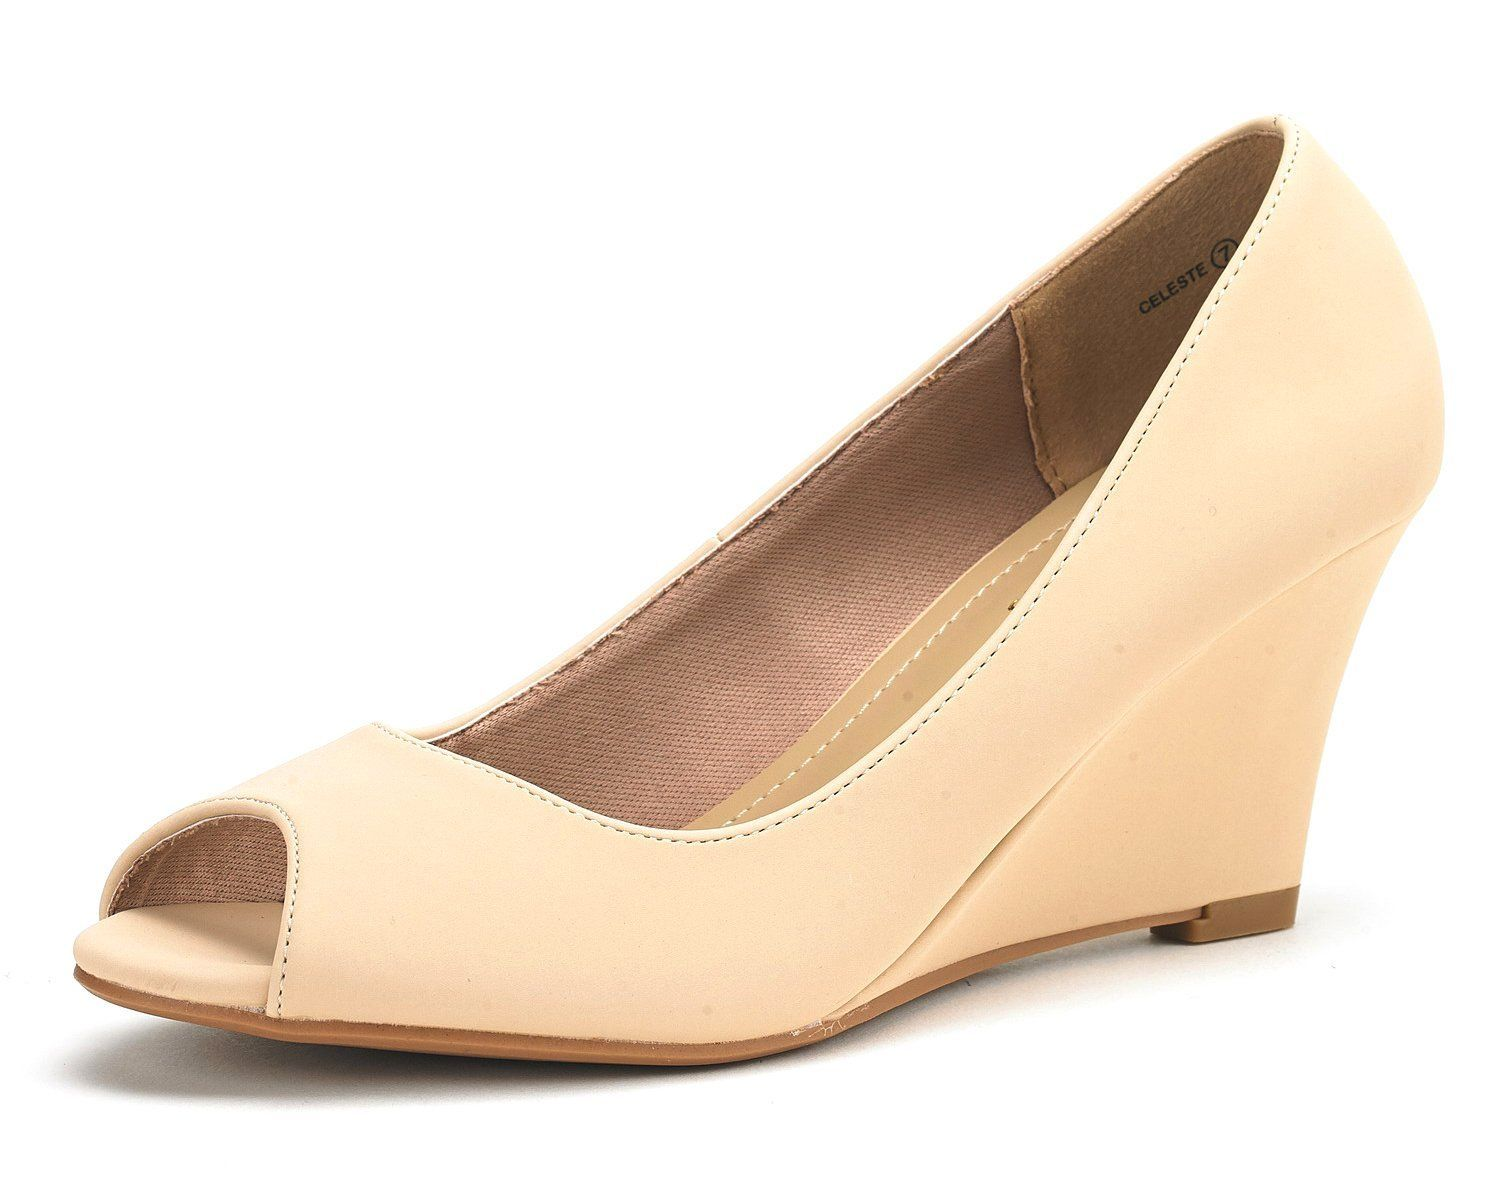 19c596f9f DREAM PAIRS CELESTE Women's Elegant Classy Open Toe Mid Heel Wedge Platform  Pumps Slip On Shoes New NUDE-NUBUCK SIZE 5